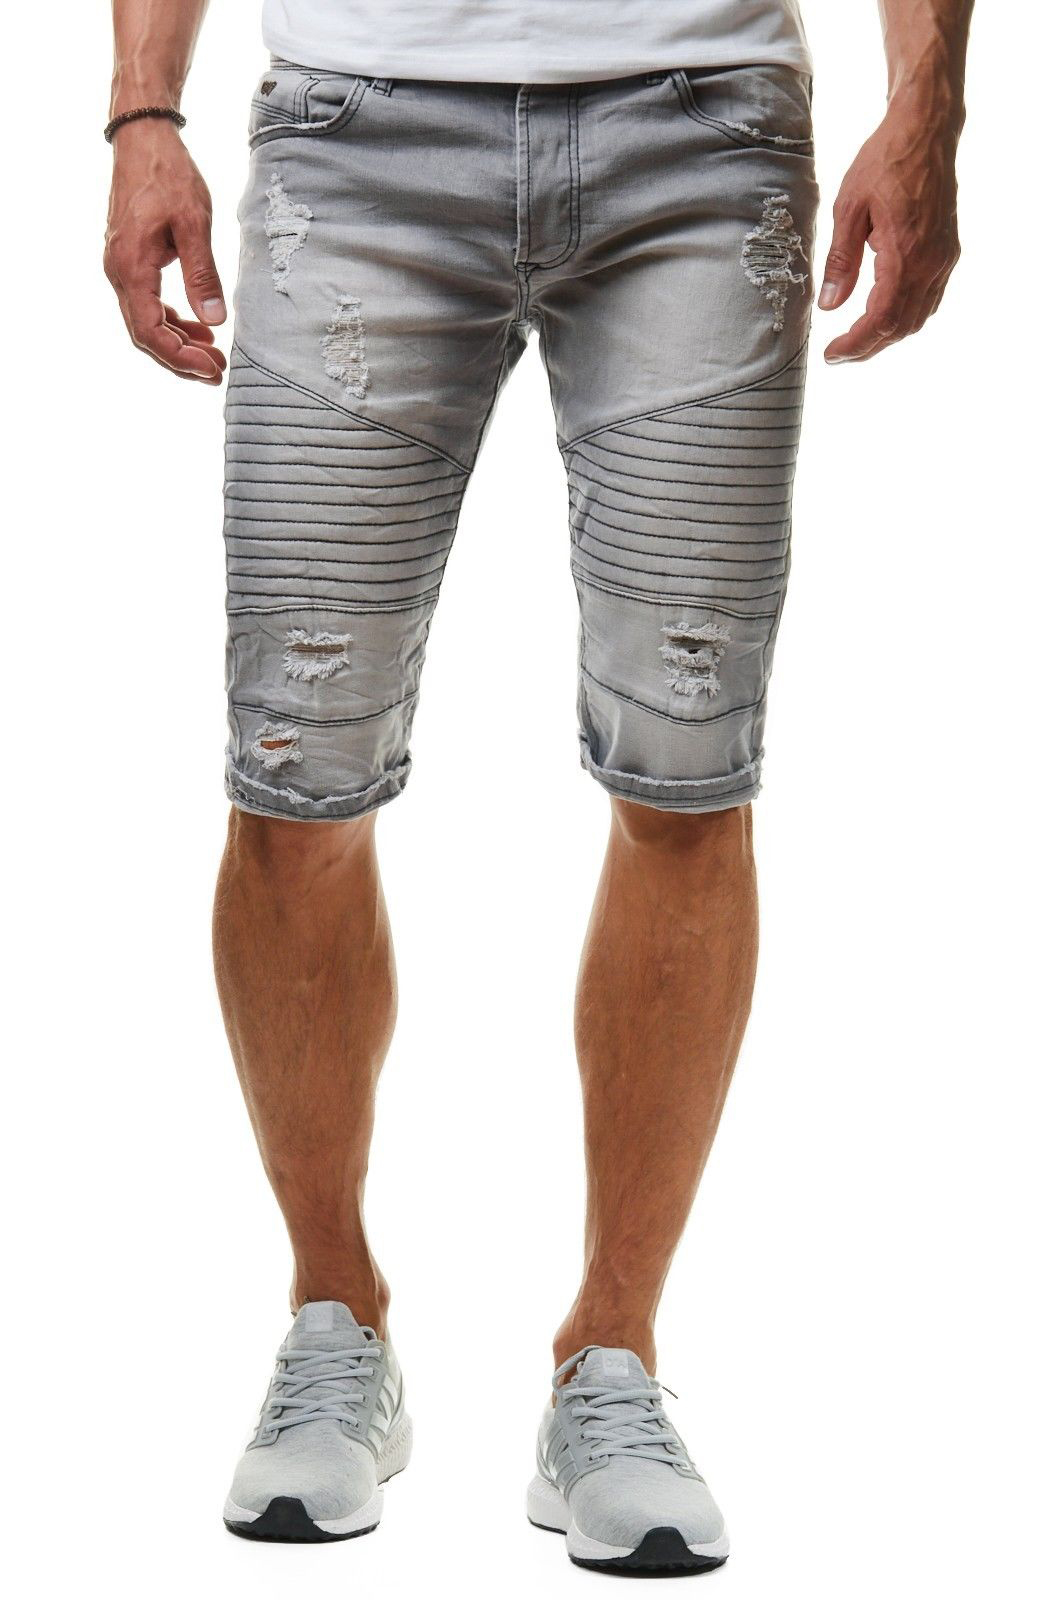 Bermuda Homme Jeans Clair Gris 210 xBodCer